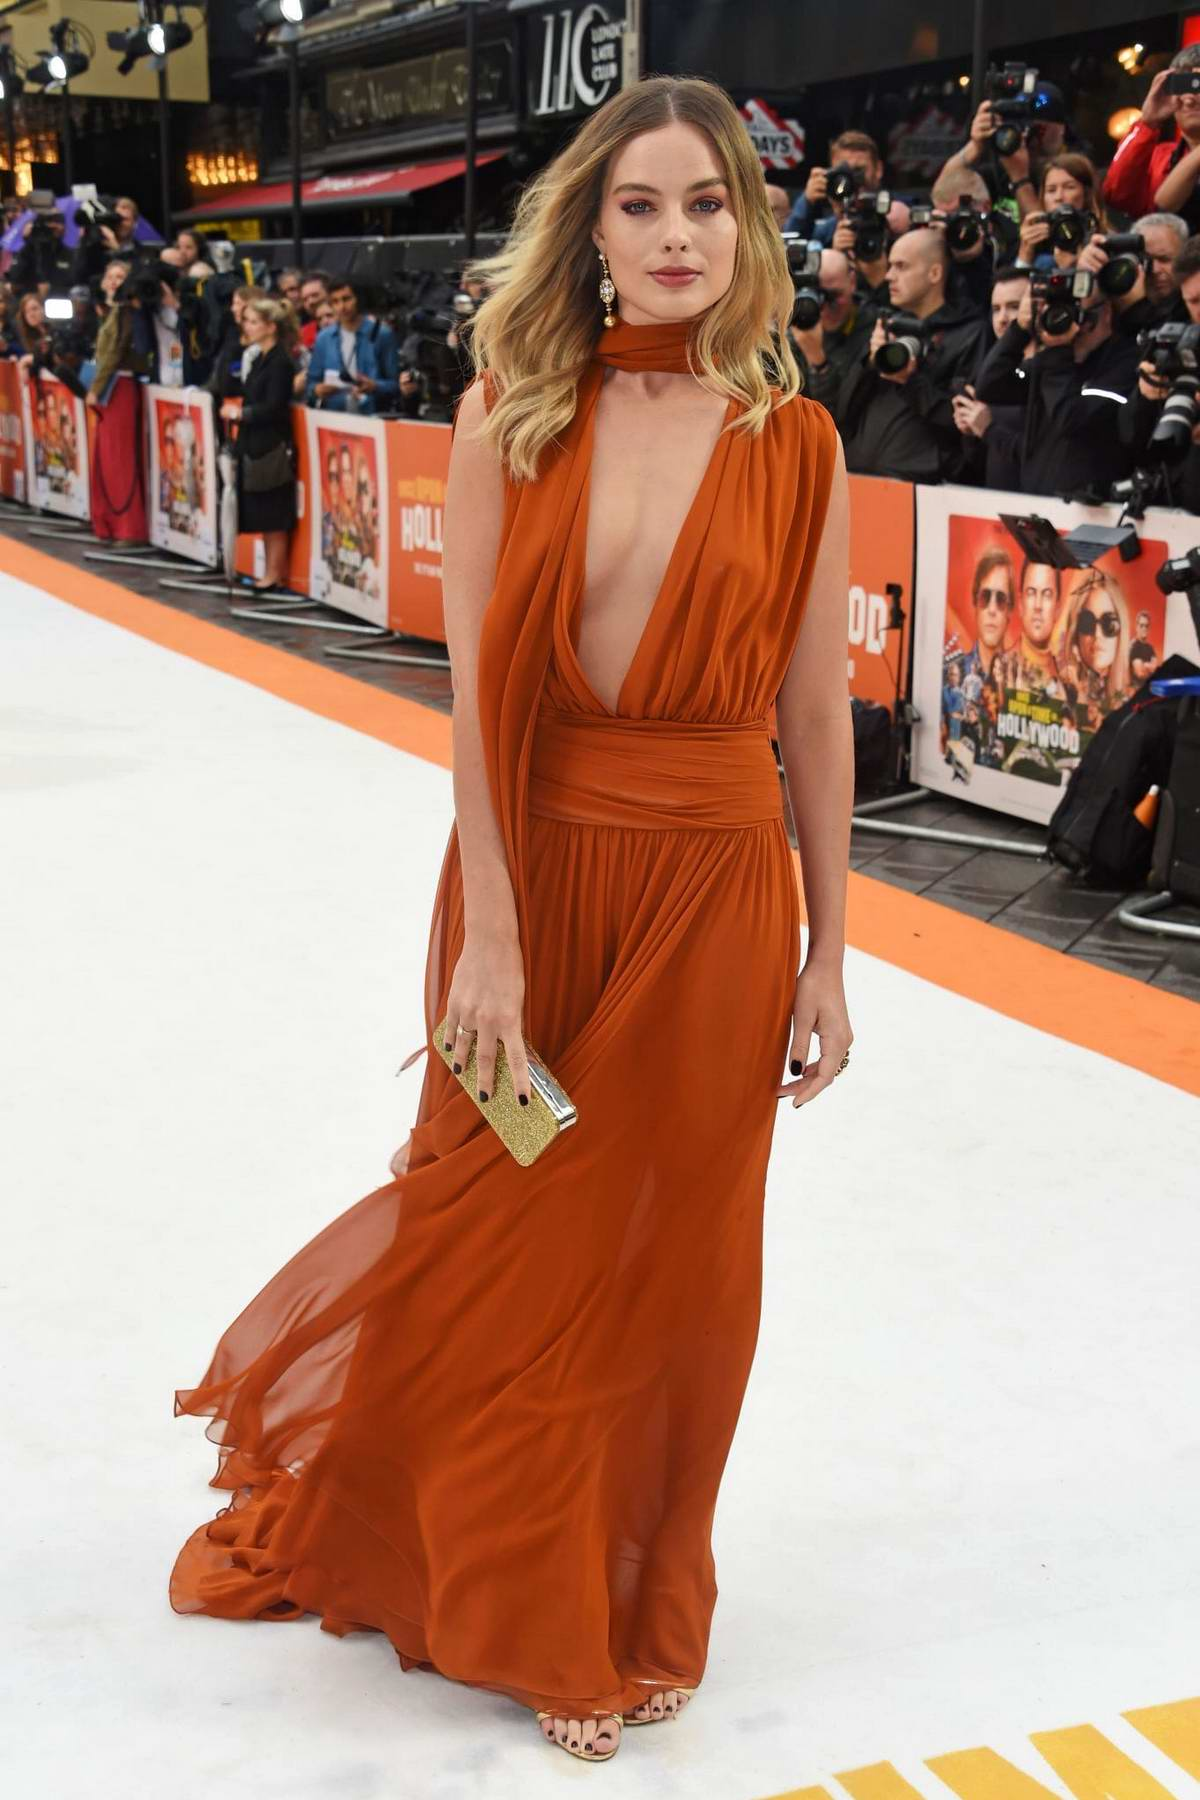 Margot Robbie attends the UK Premiere of 'Once Upon a Time in Hollywood' in London, UK